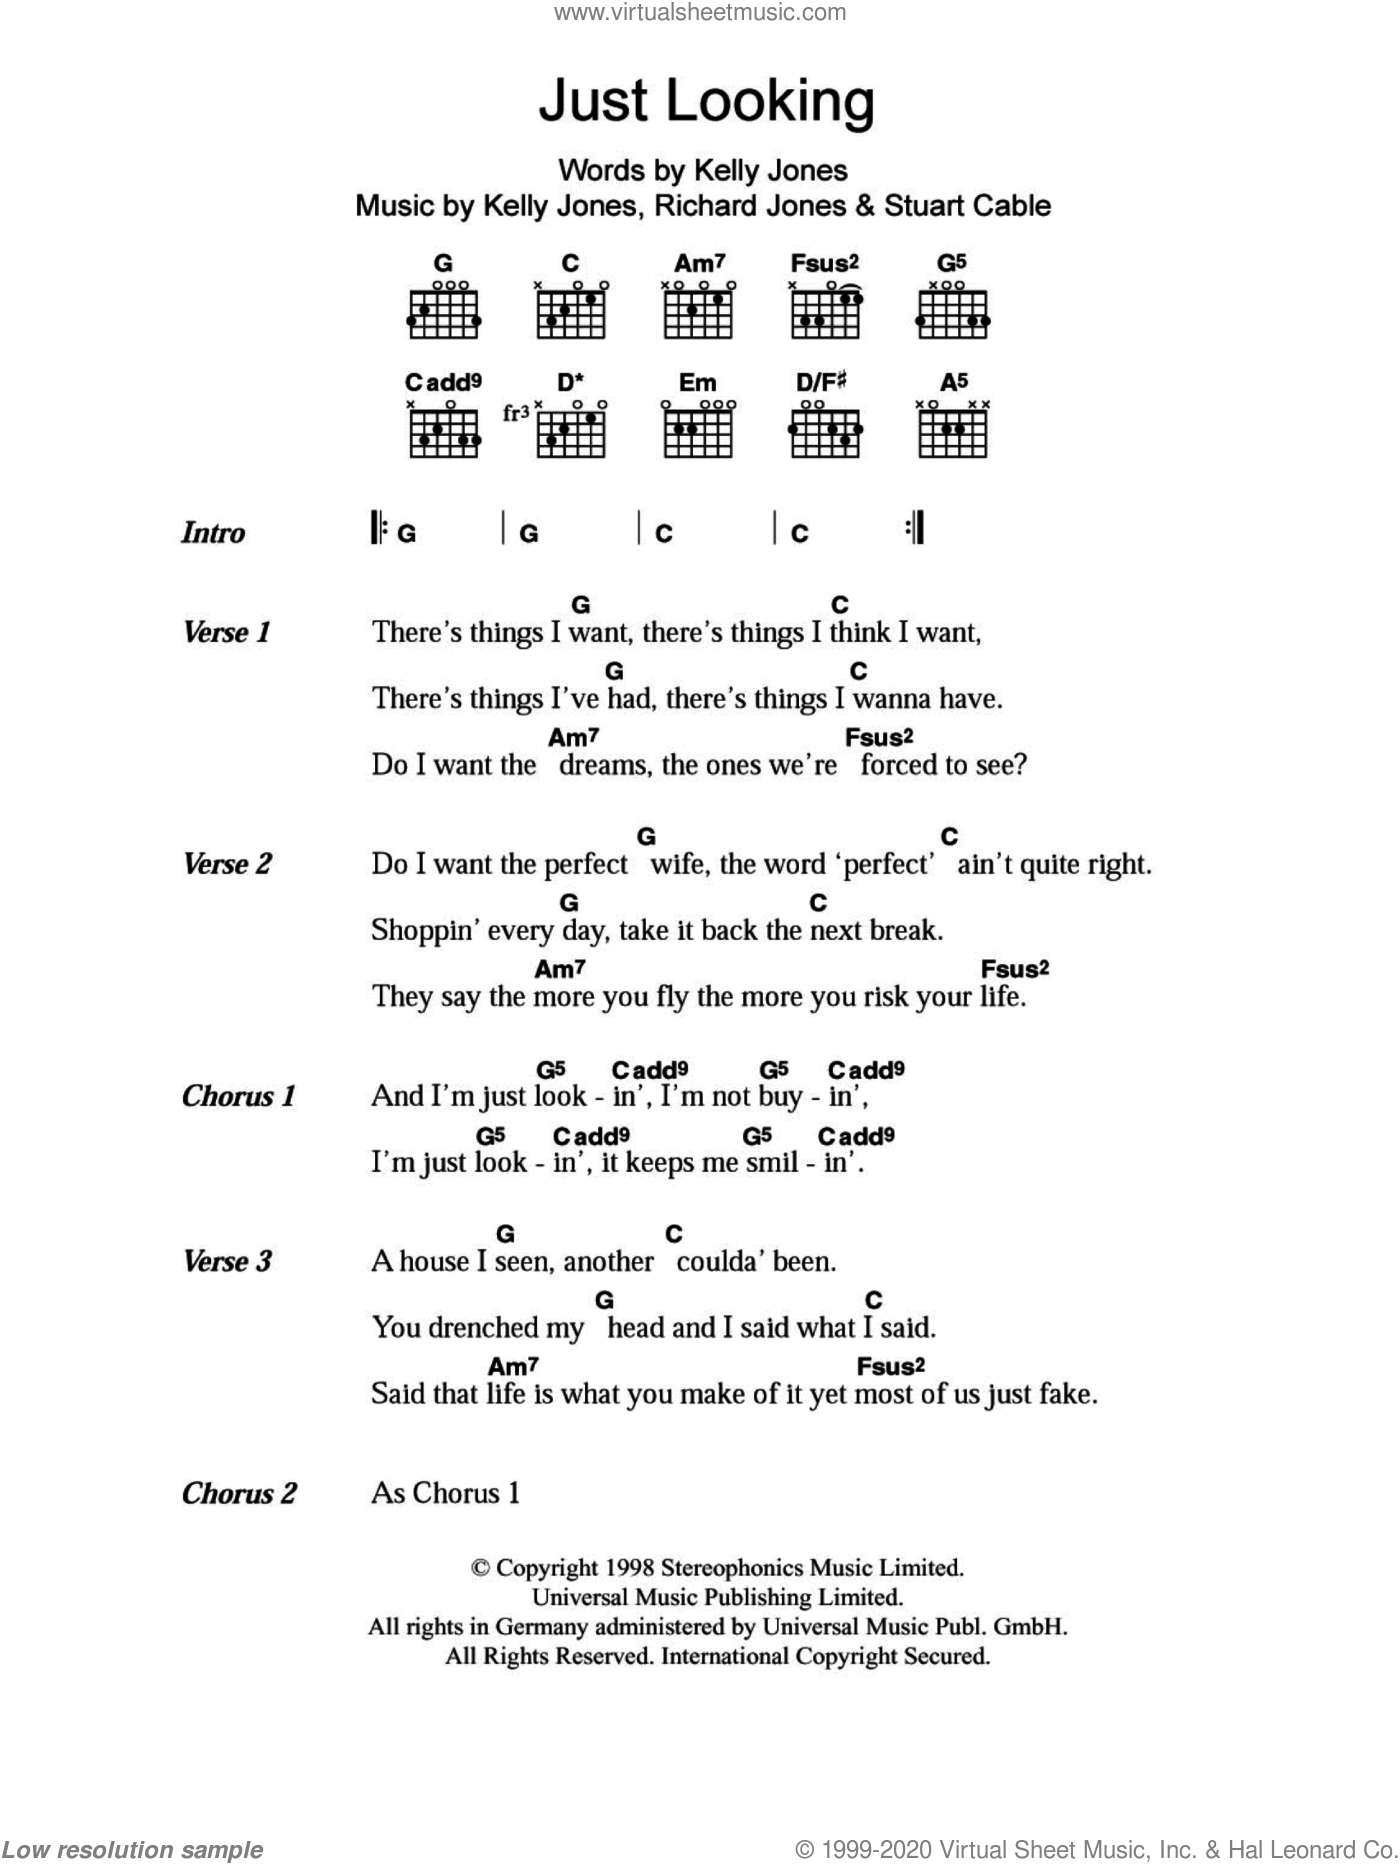 Just Looking sheet music for guitar (chords) by Stereophonics, Kelly Jones, Richard Jones and Stuart Cable, intermediate skill level